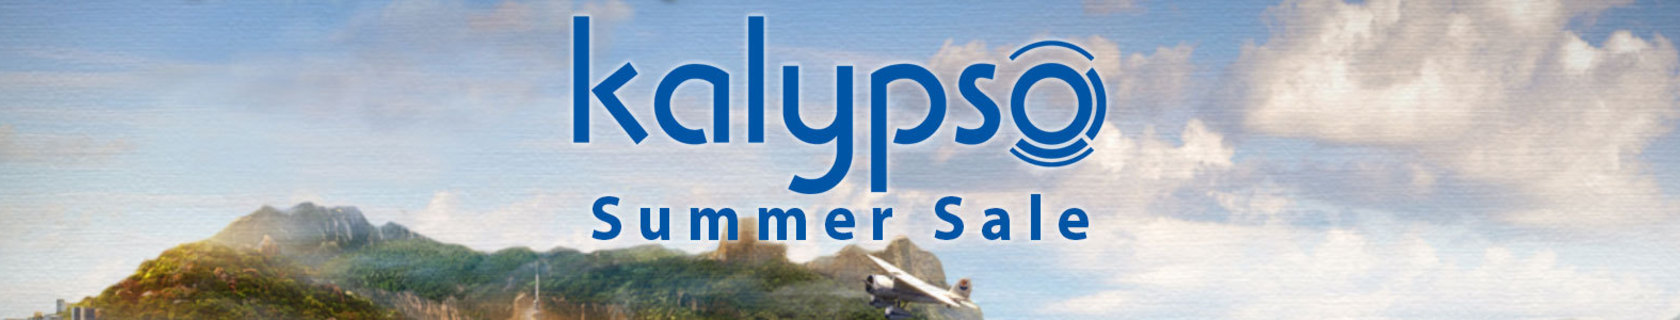 Kalpyso Summer Sale